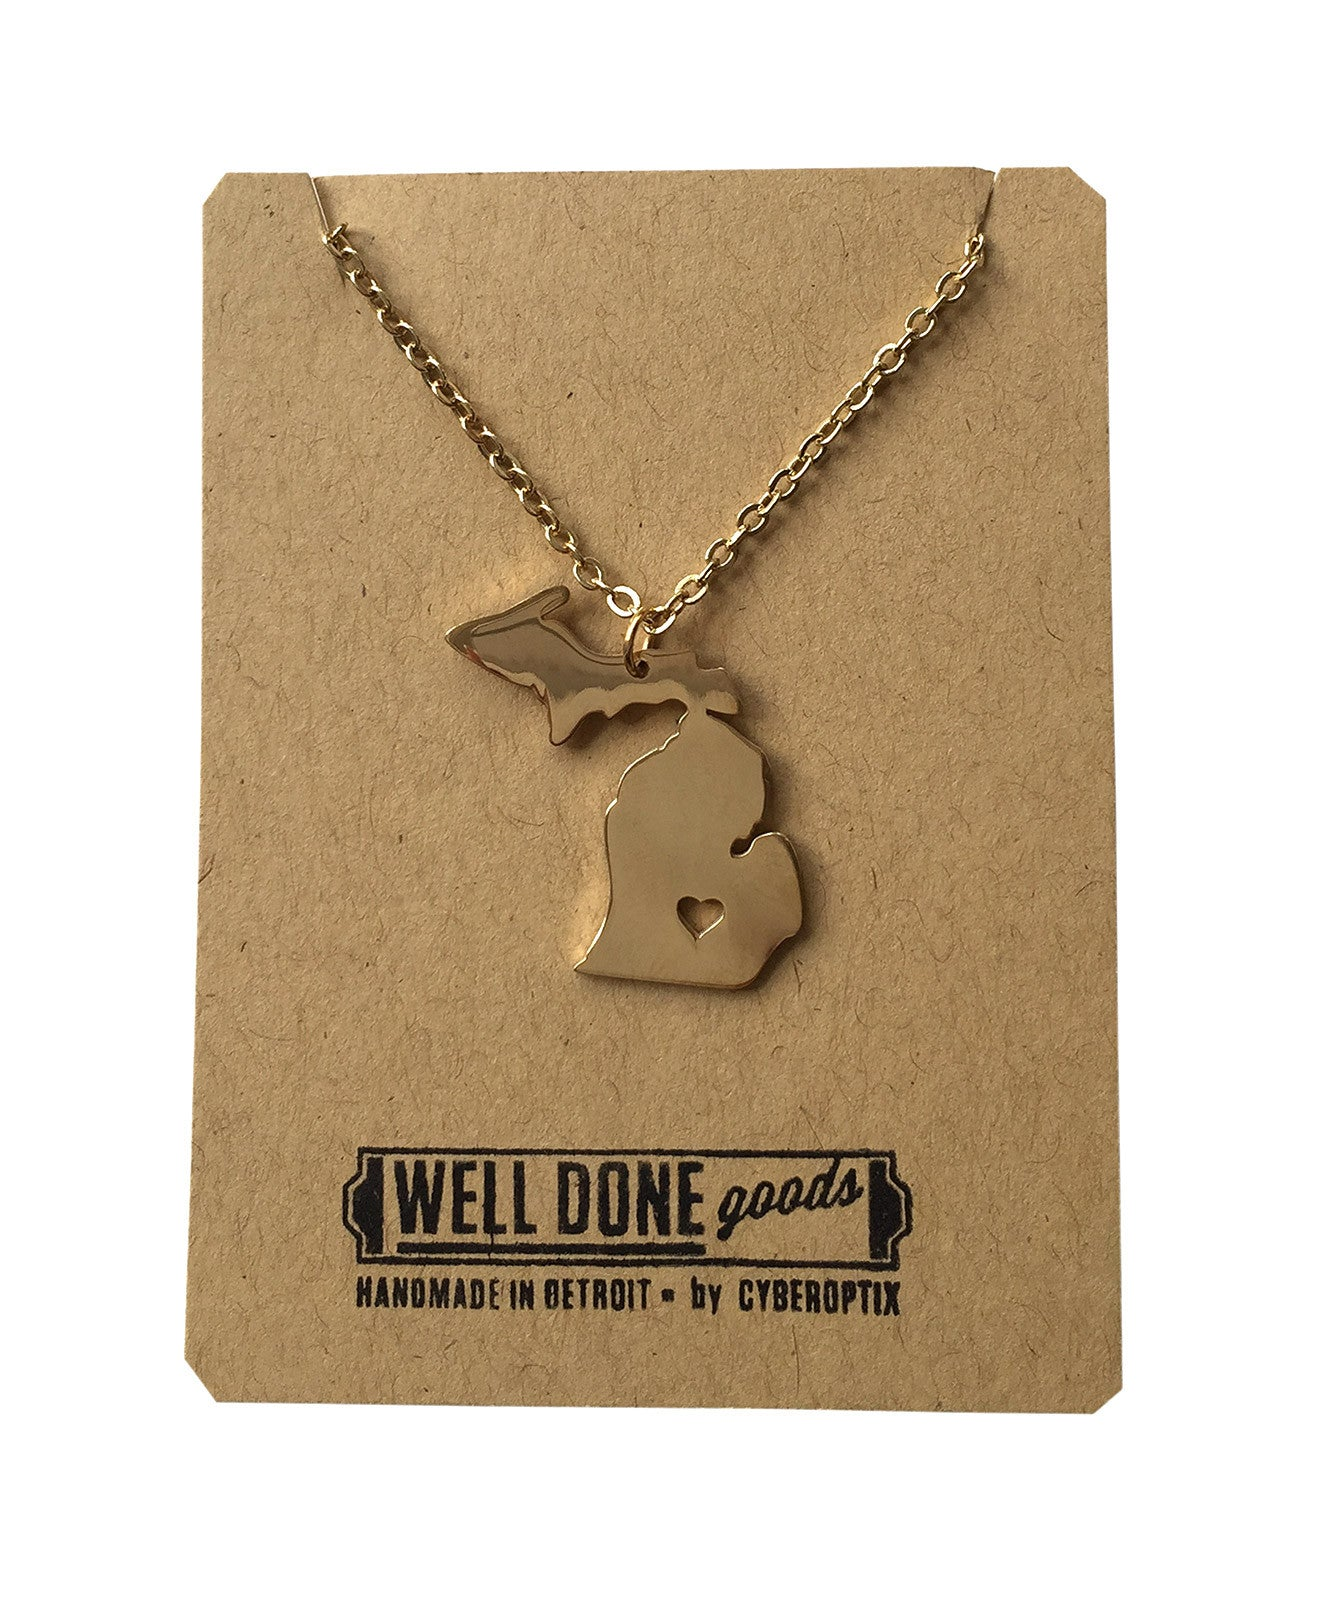 Michigan lower peninsula necklace gold michigan necklace state heart capital pendant well done goods malvernweather Images